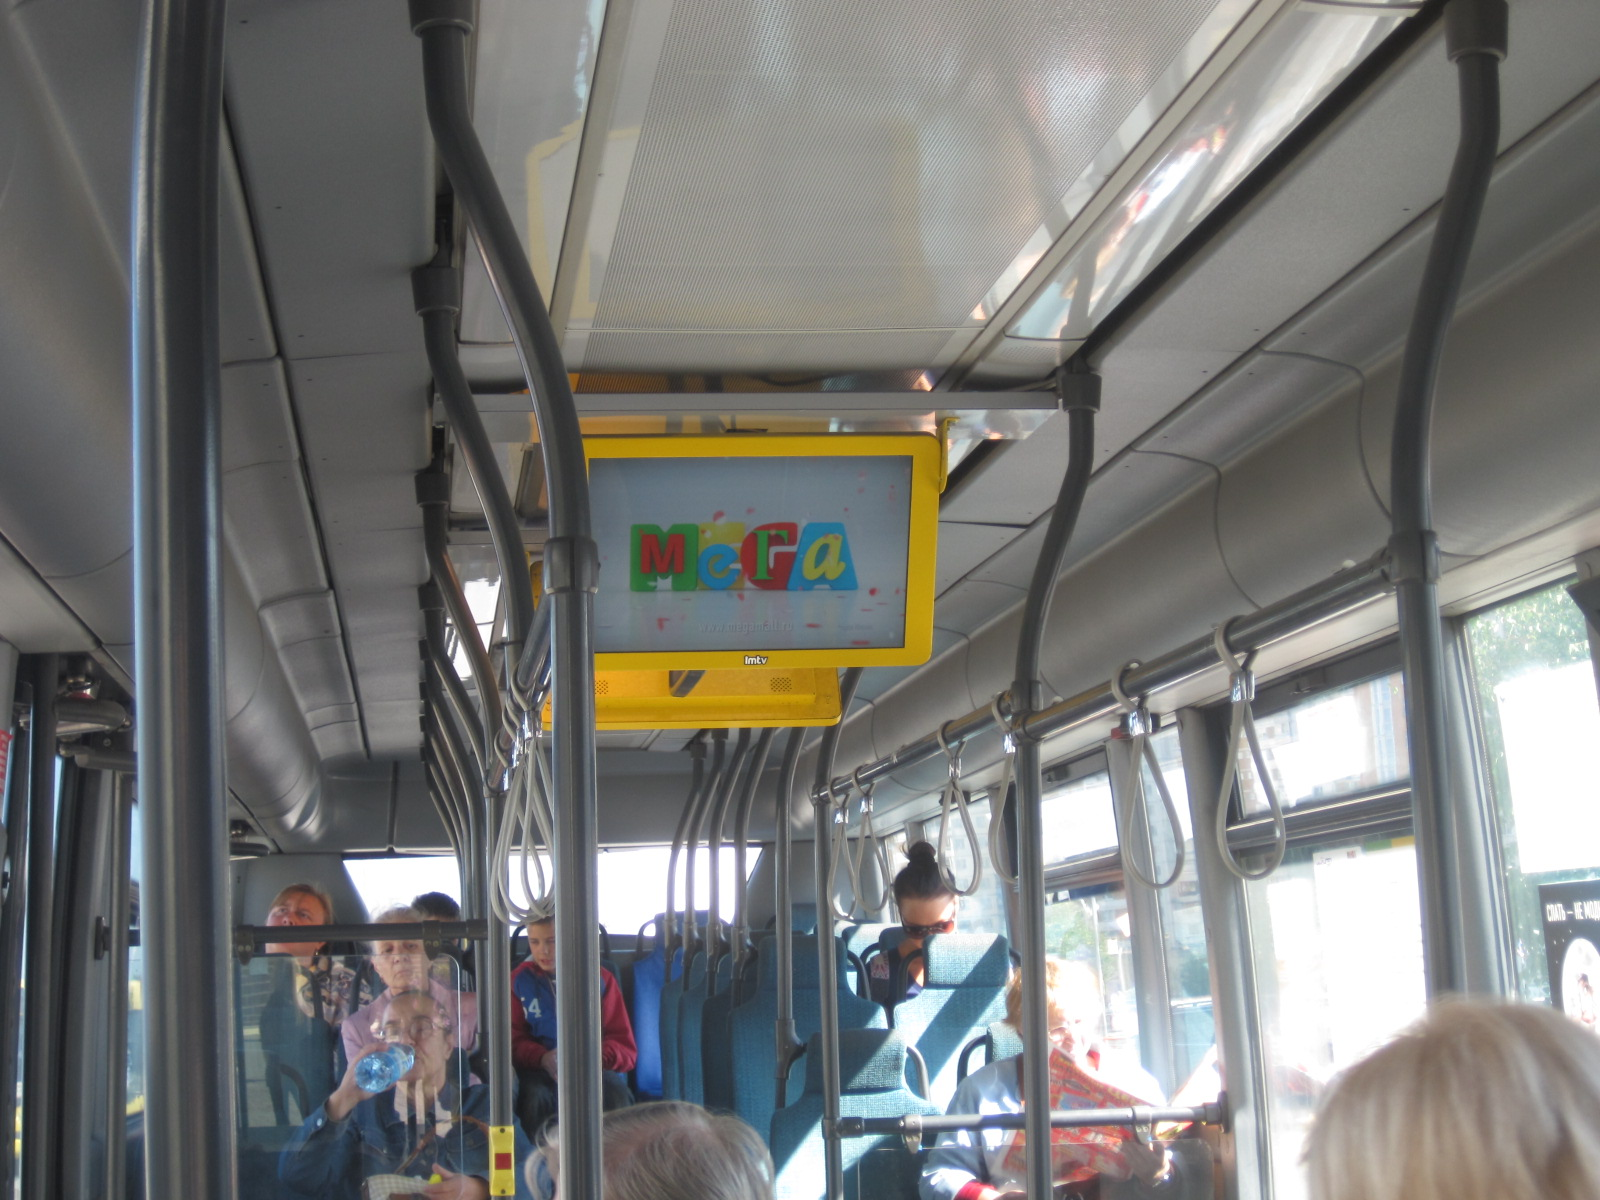 MegaBus installs over 300 screens in 101 buses in order to broadcast infotainment and commercials